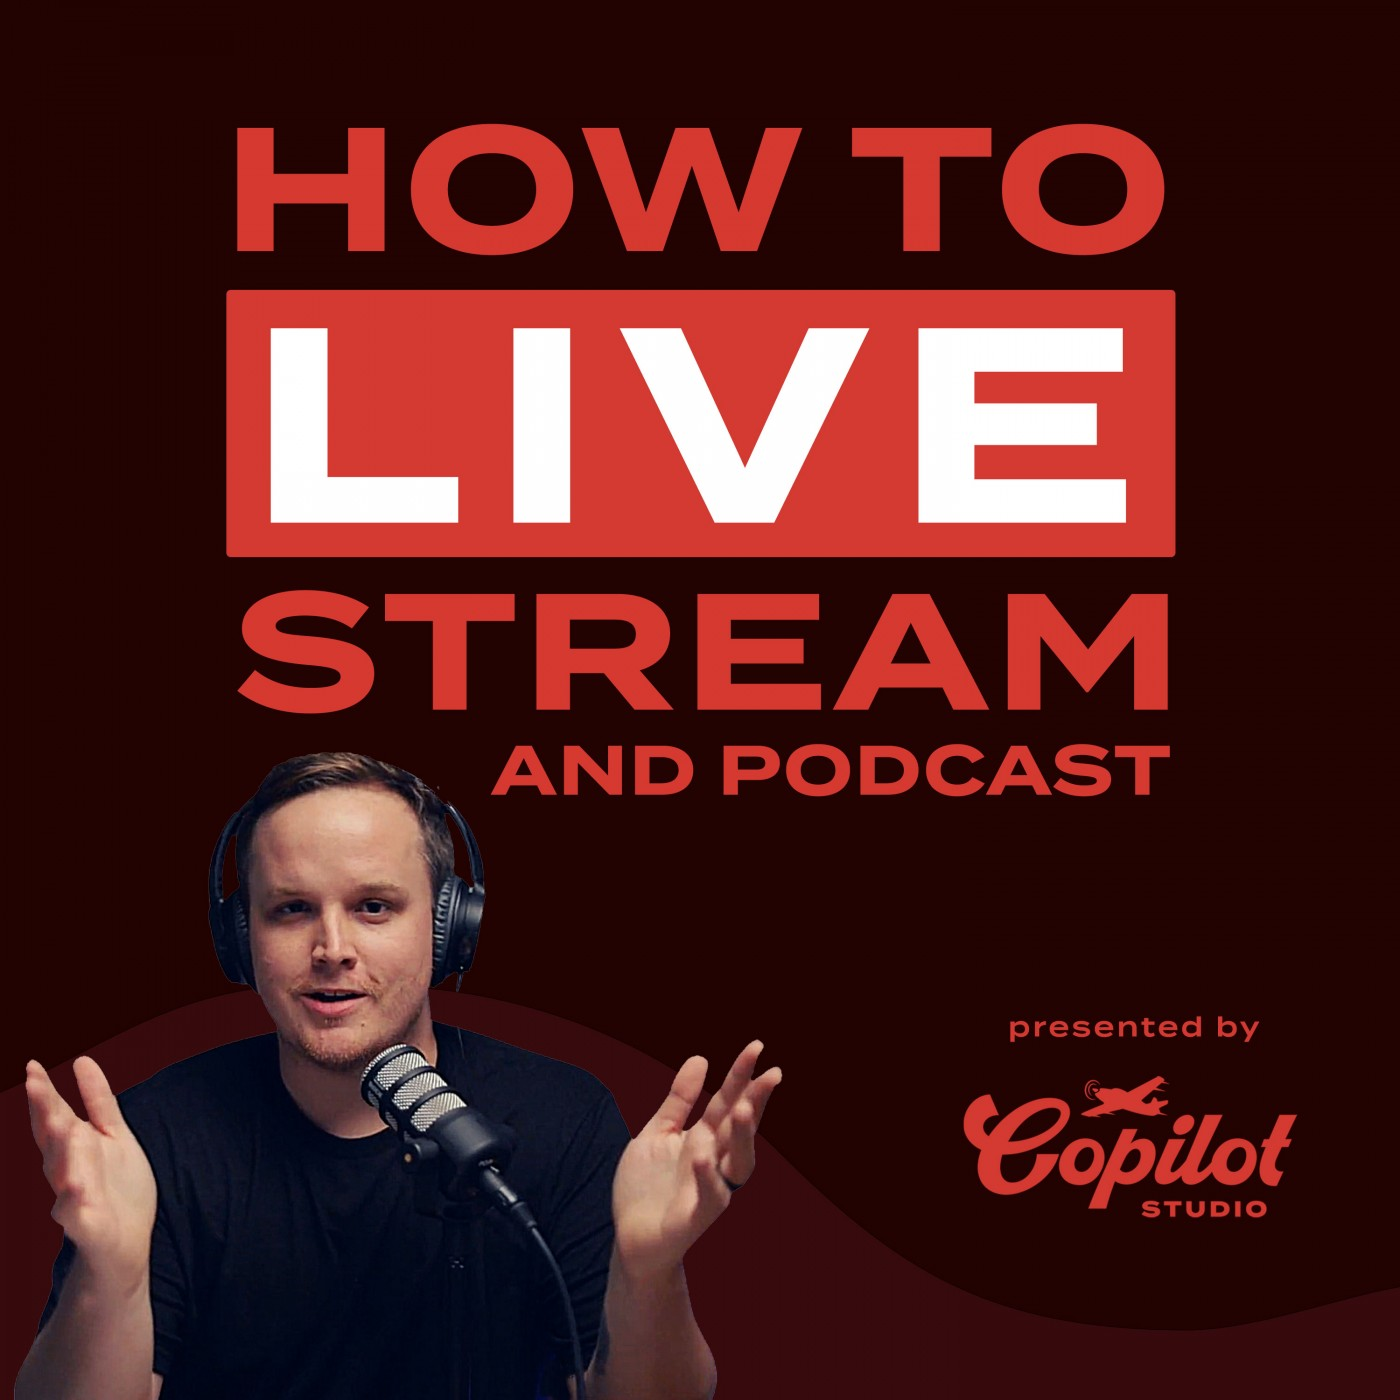 How to Live Stream and Podcast